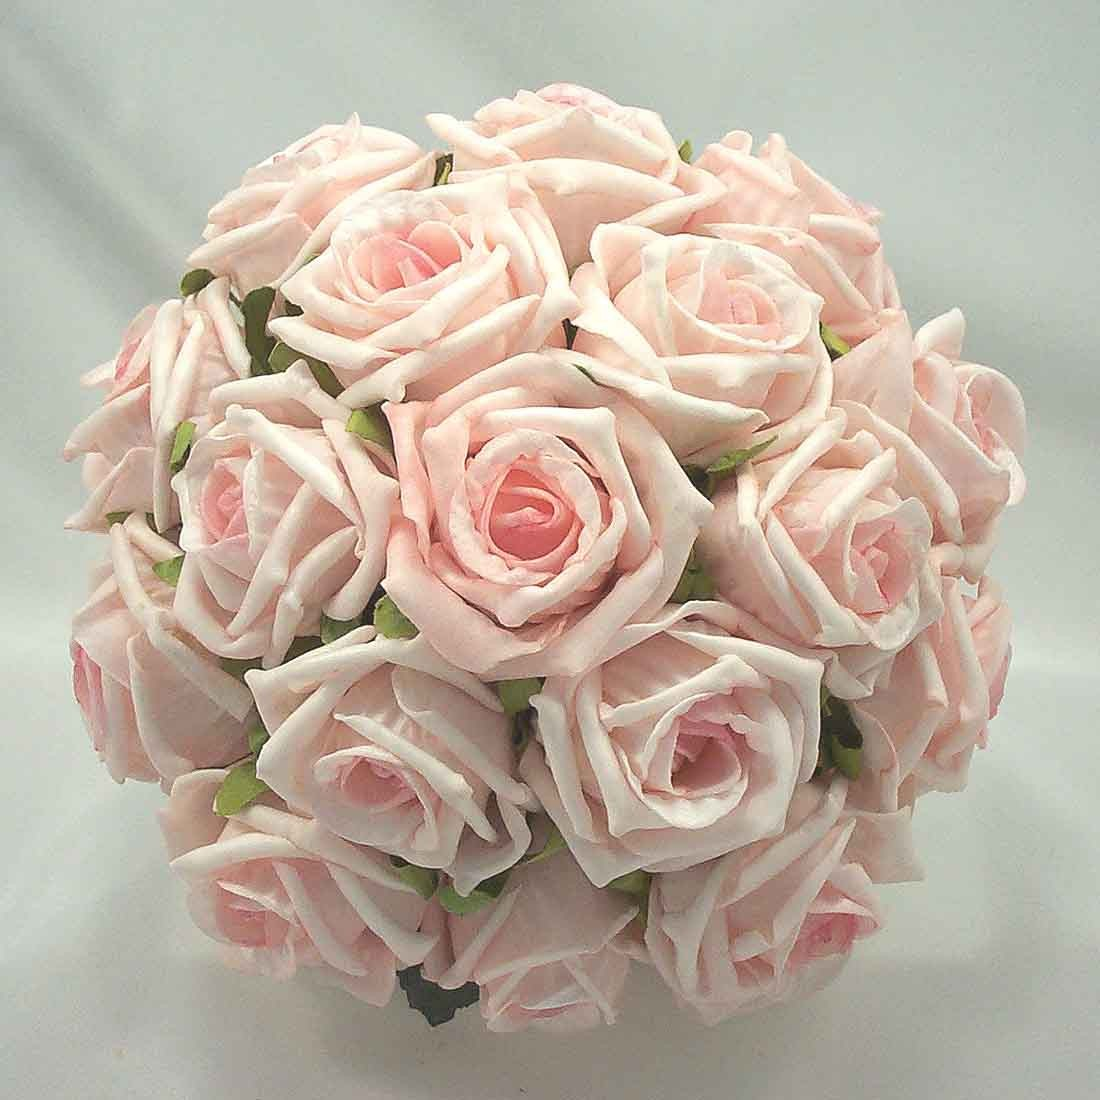 Bridesmaid\'s Bouquets - Light Baby Pink Rose Bridesmaid\'s Posy ...